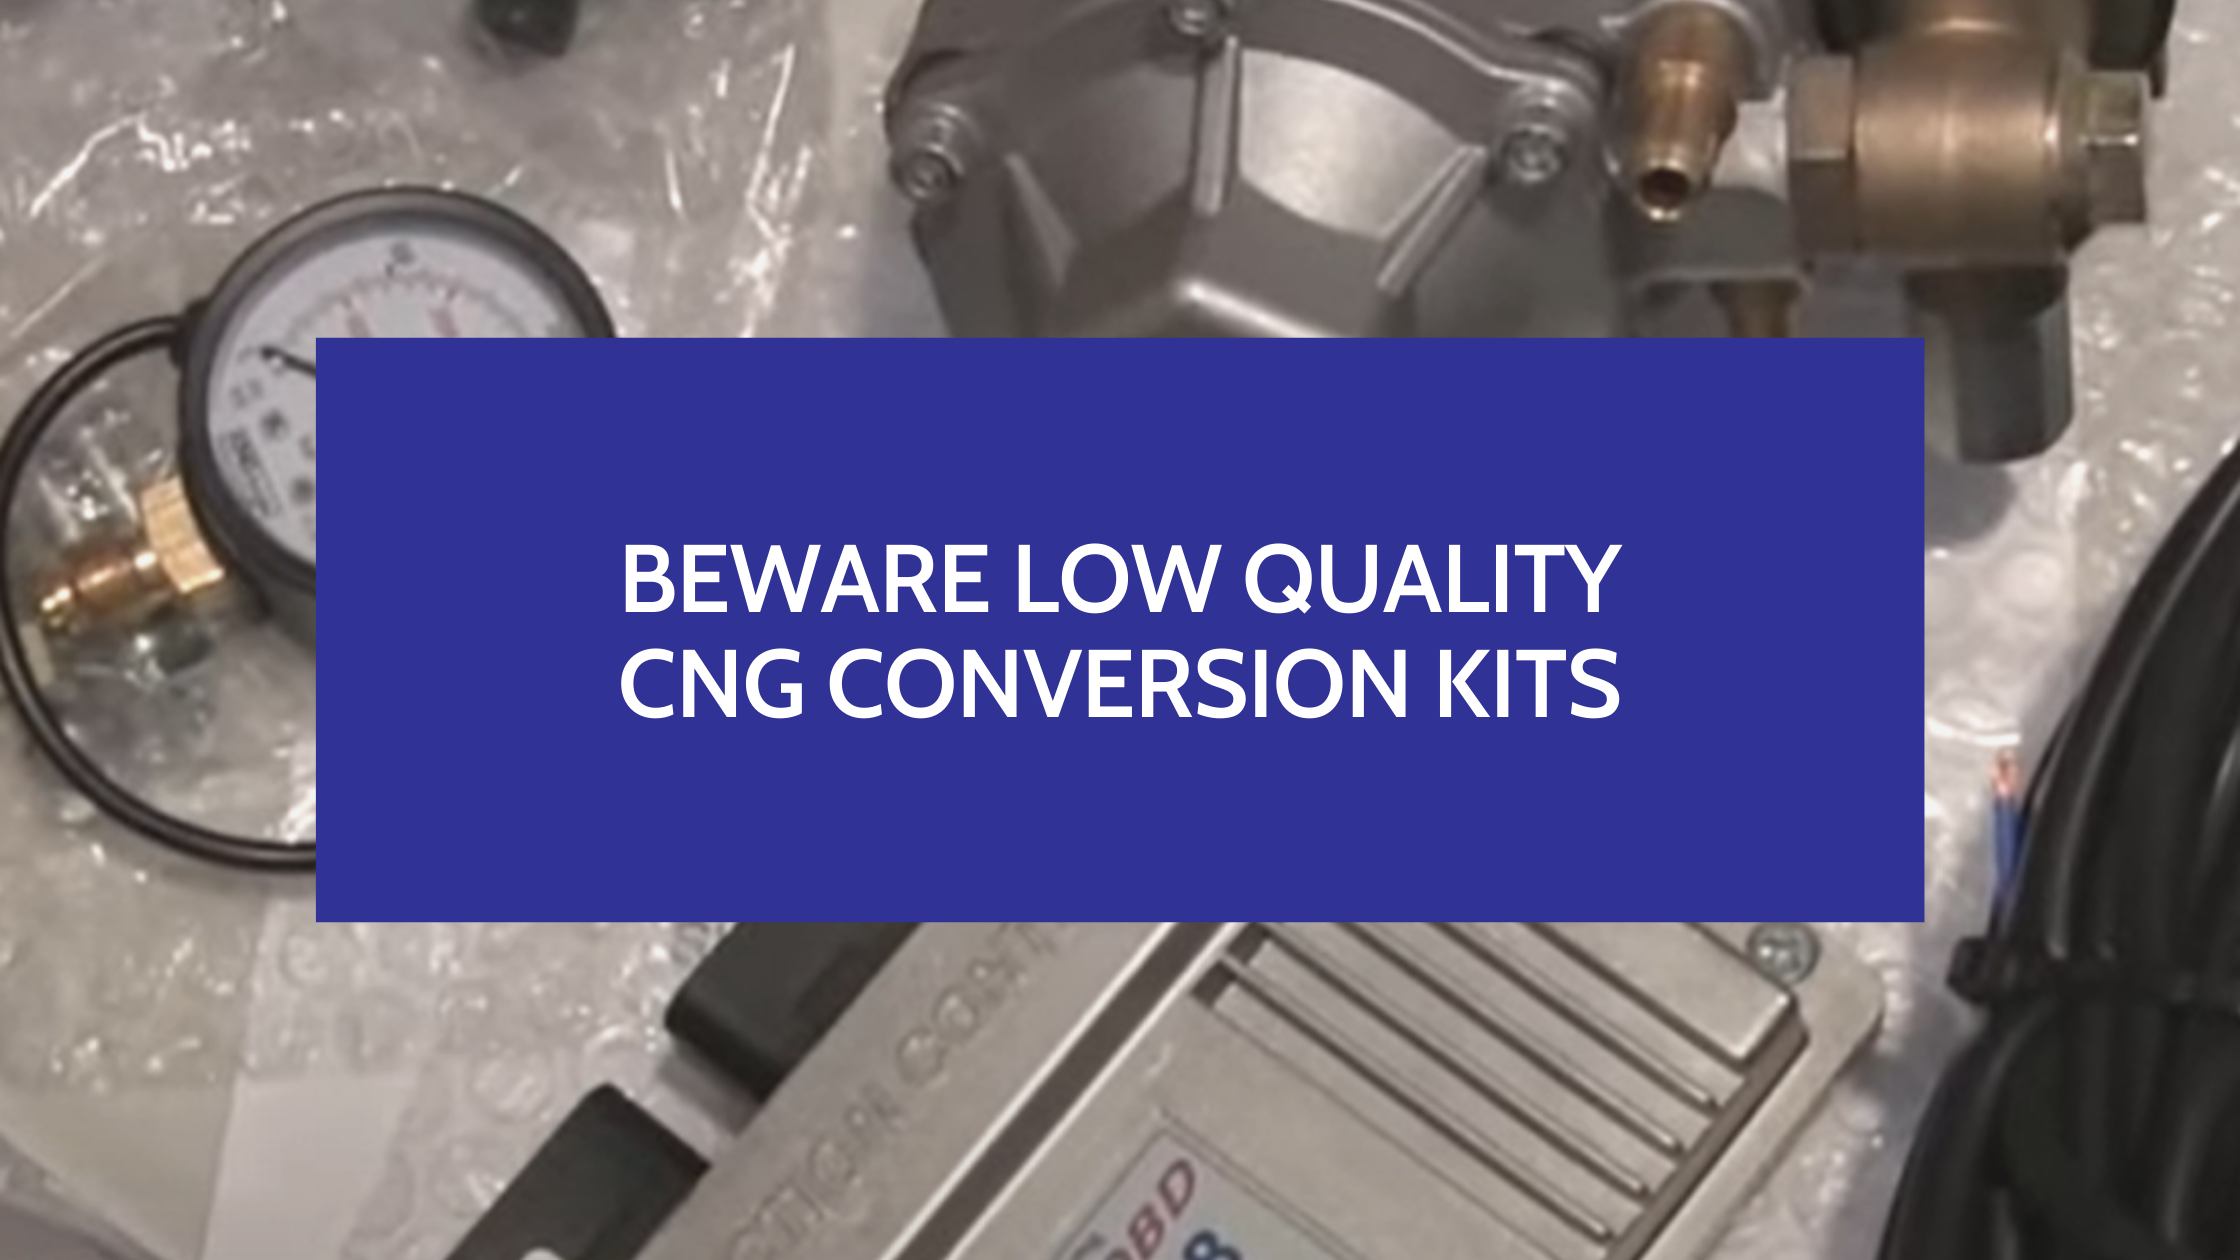 Beware Low Quality CNG Conversion Kits